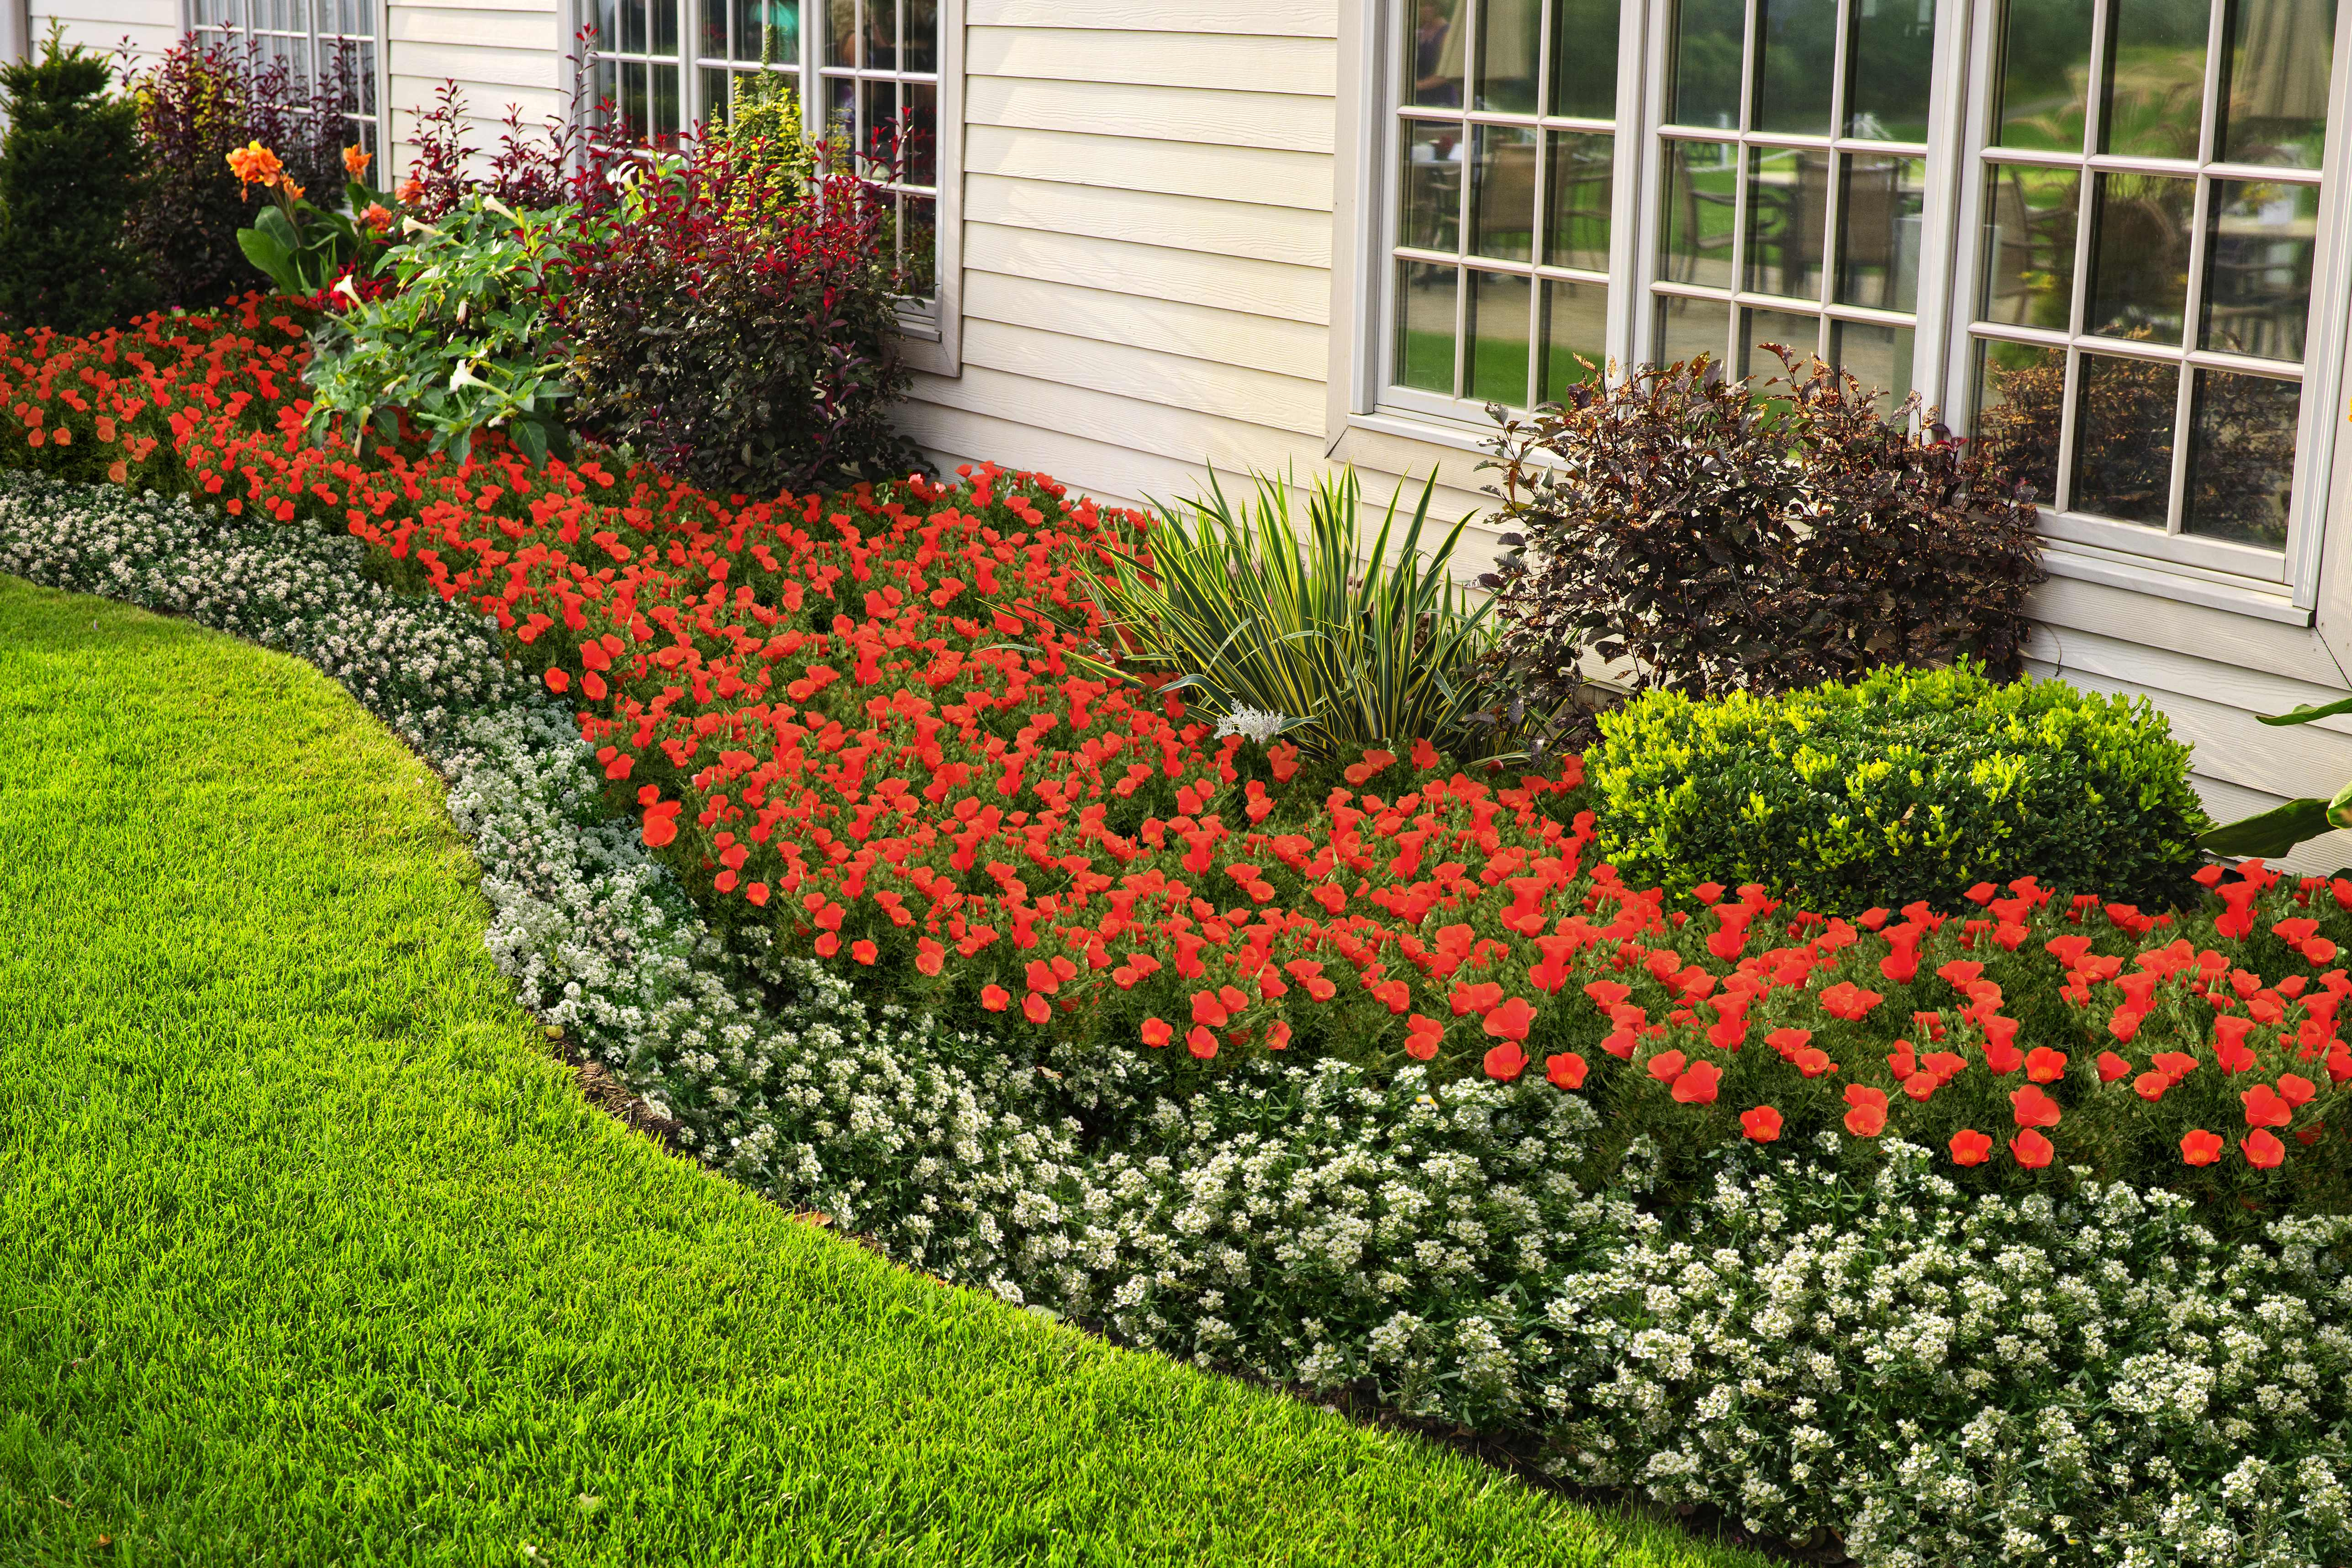 New Gardening Innovation Easily Creates Flowering, Living Mulch Beds